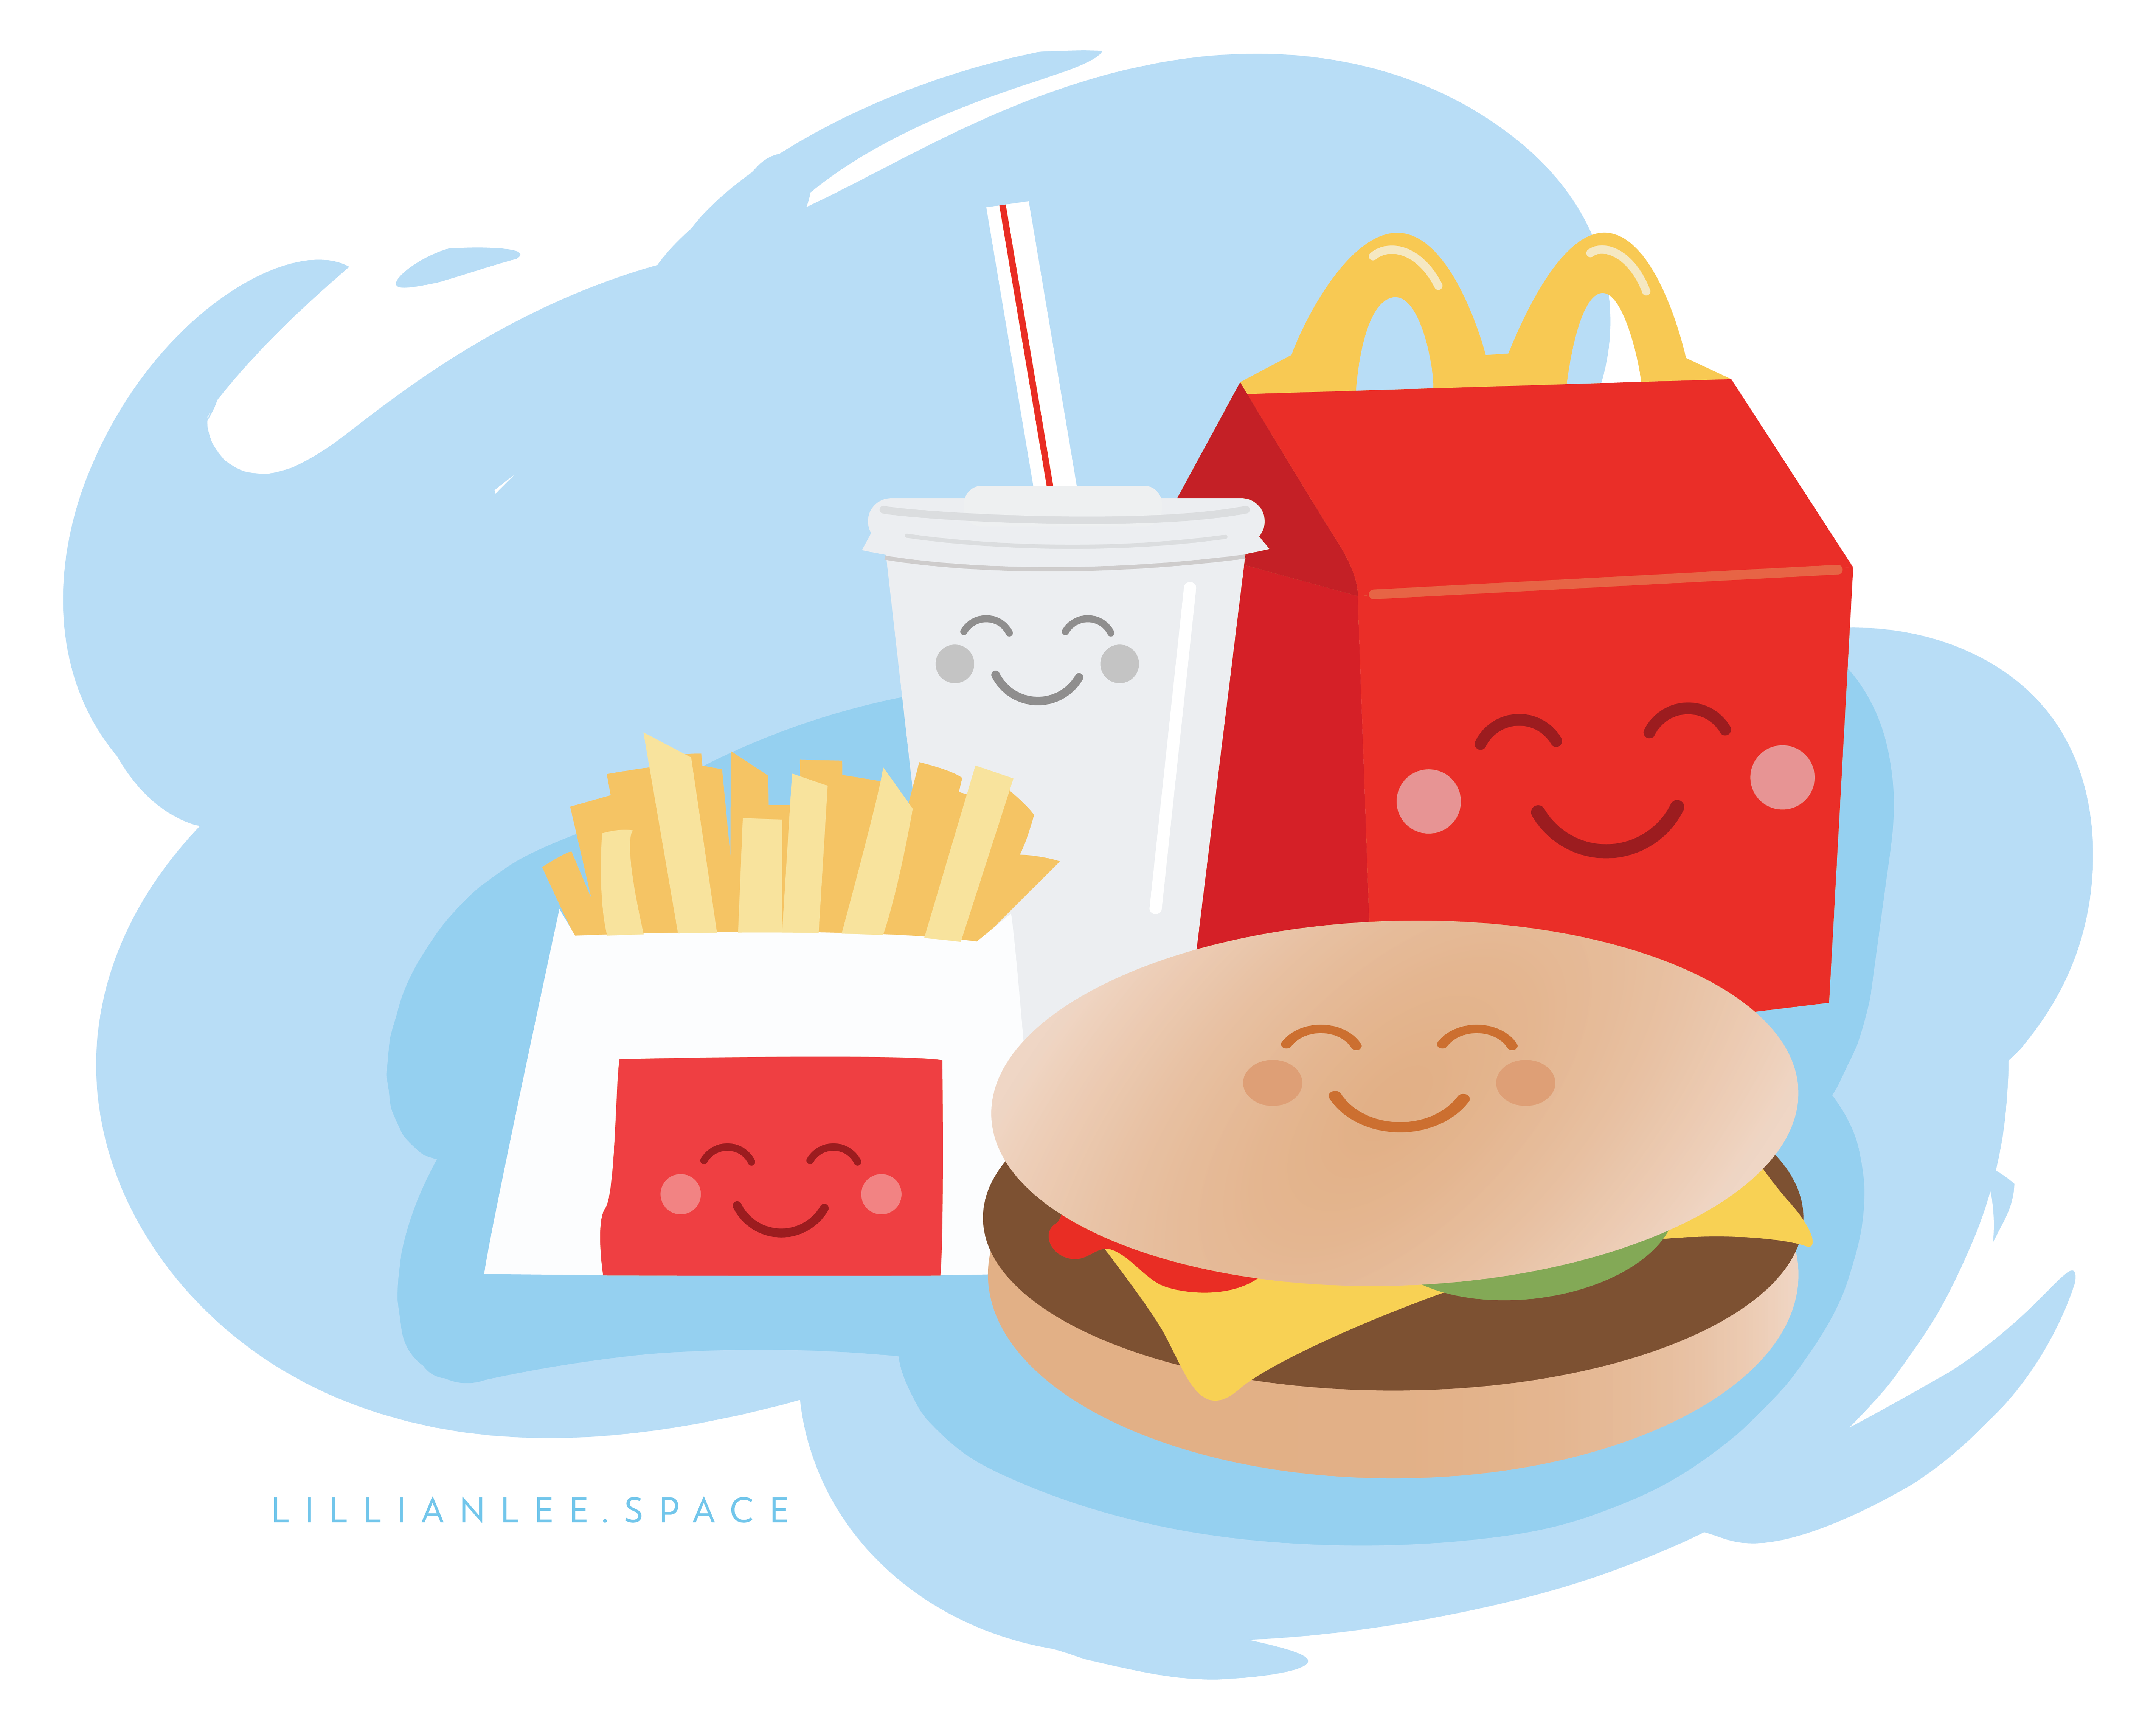 Have a HappeEee Meal illustration by Lillian Lee